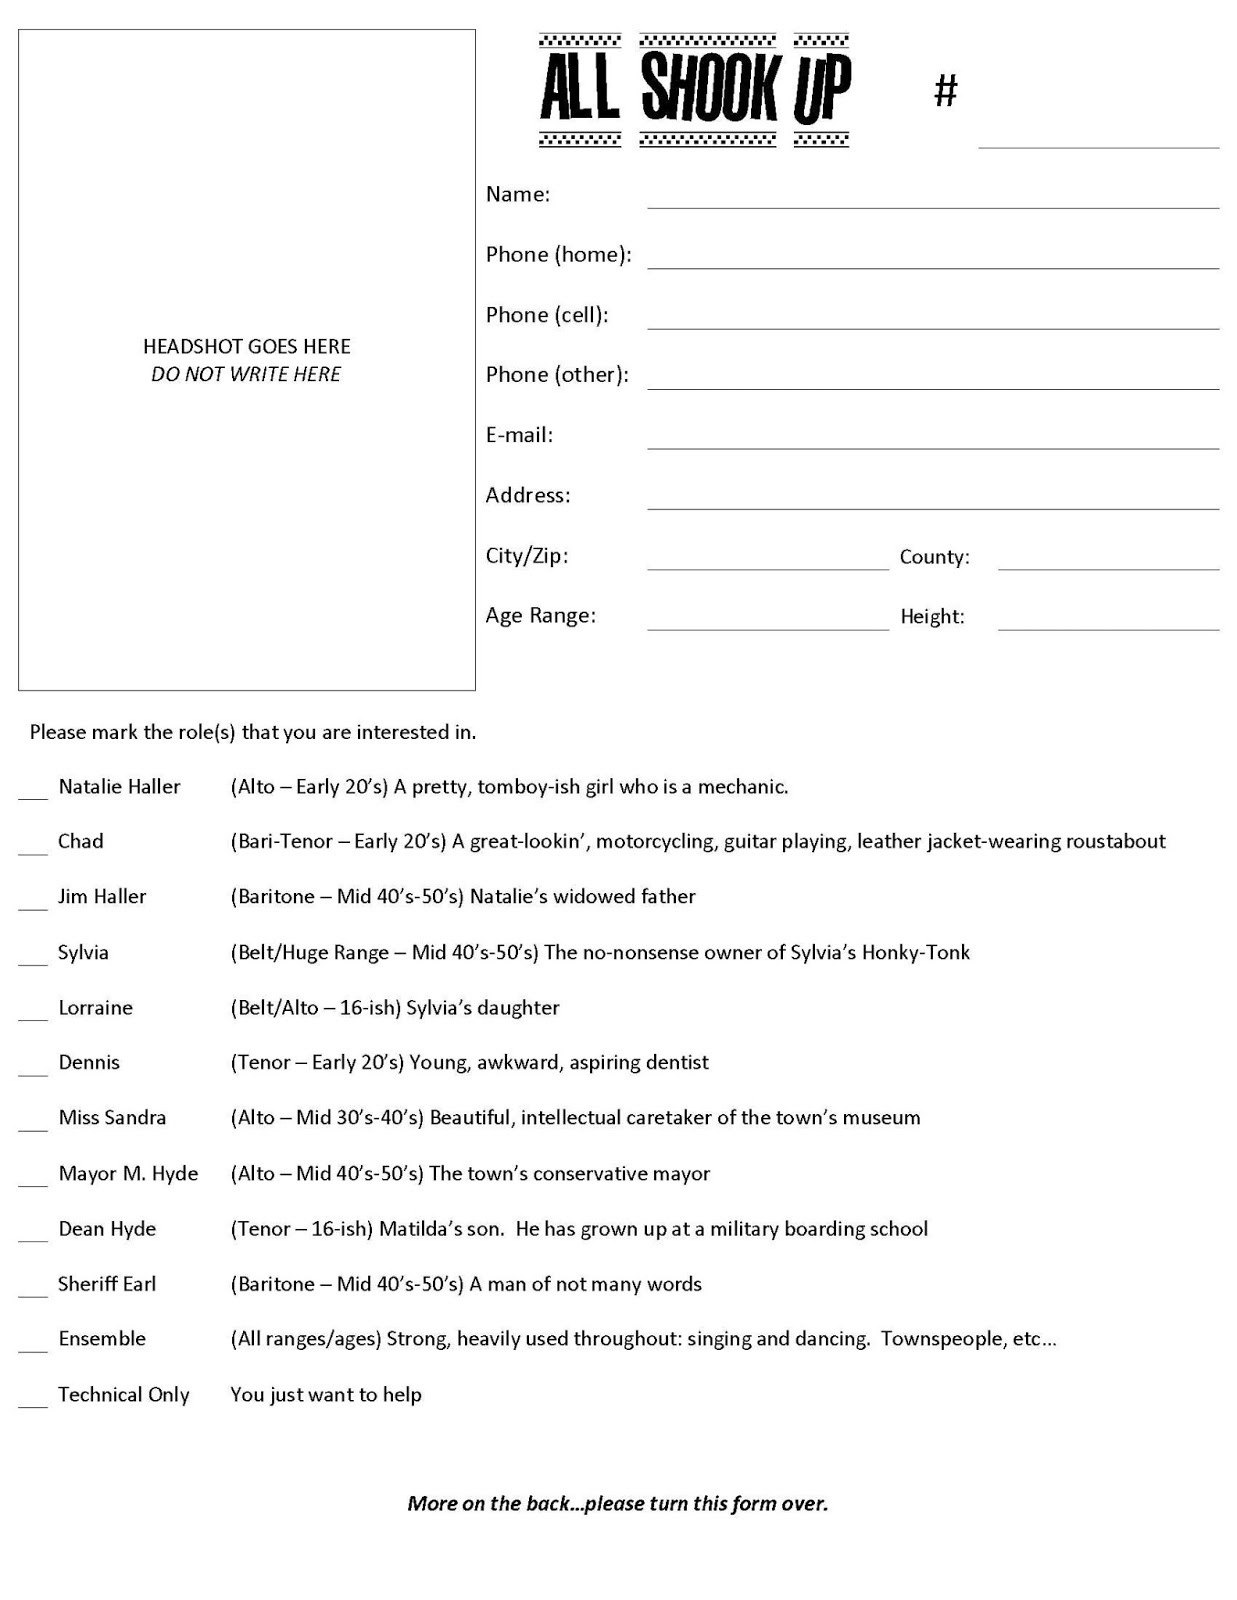 All Shook Up at STG 2013 ASU Audition Form – Audition Form